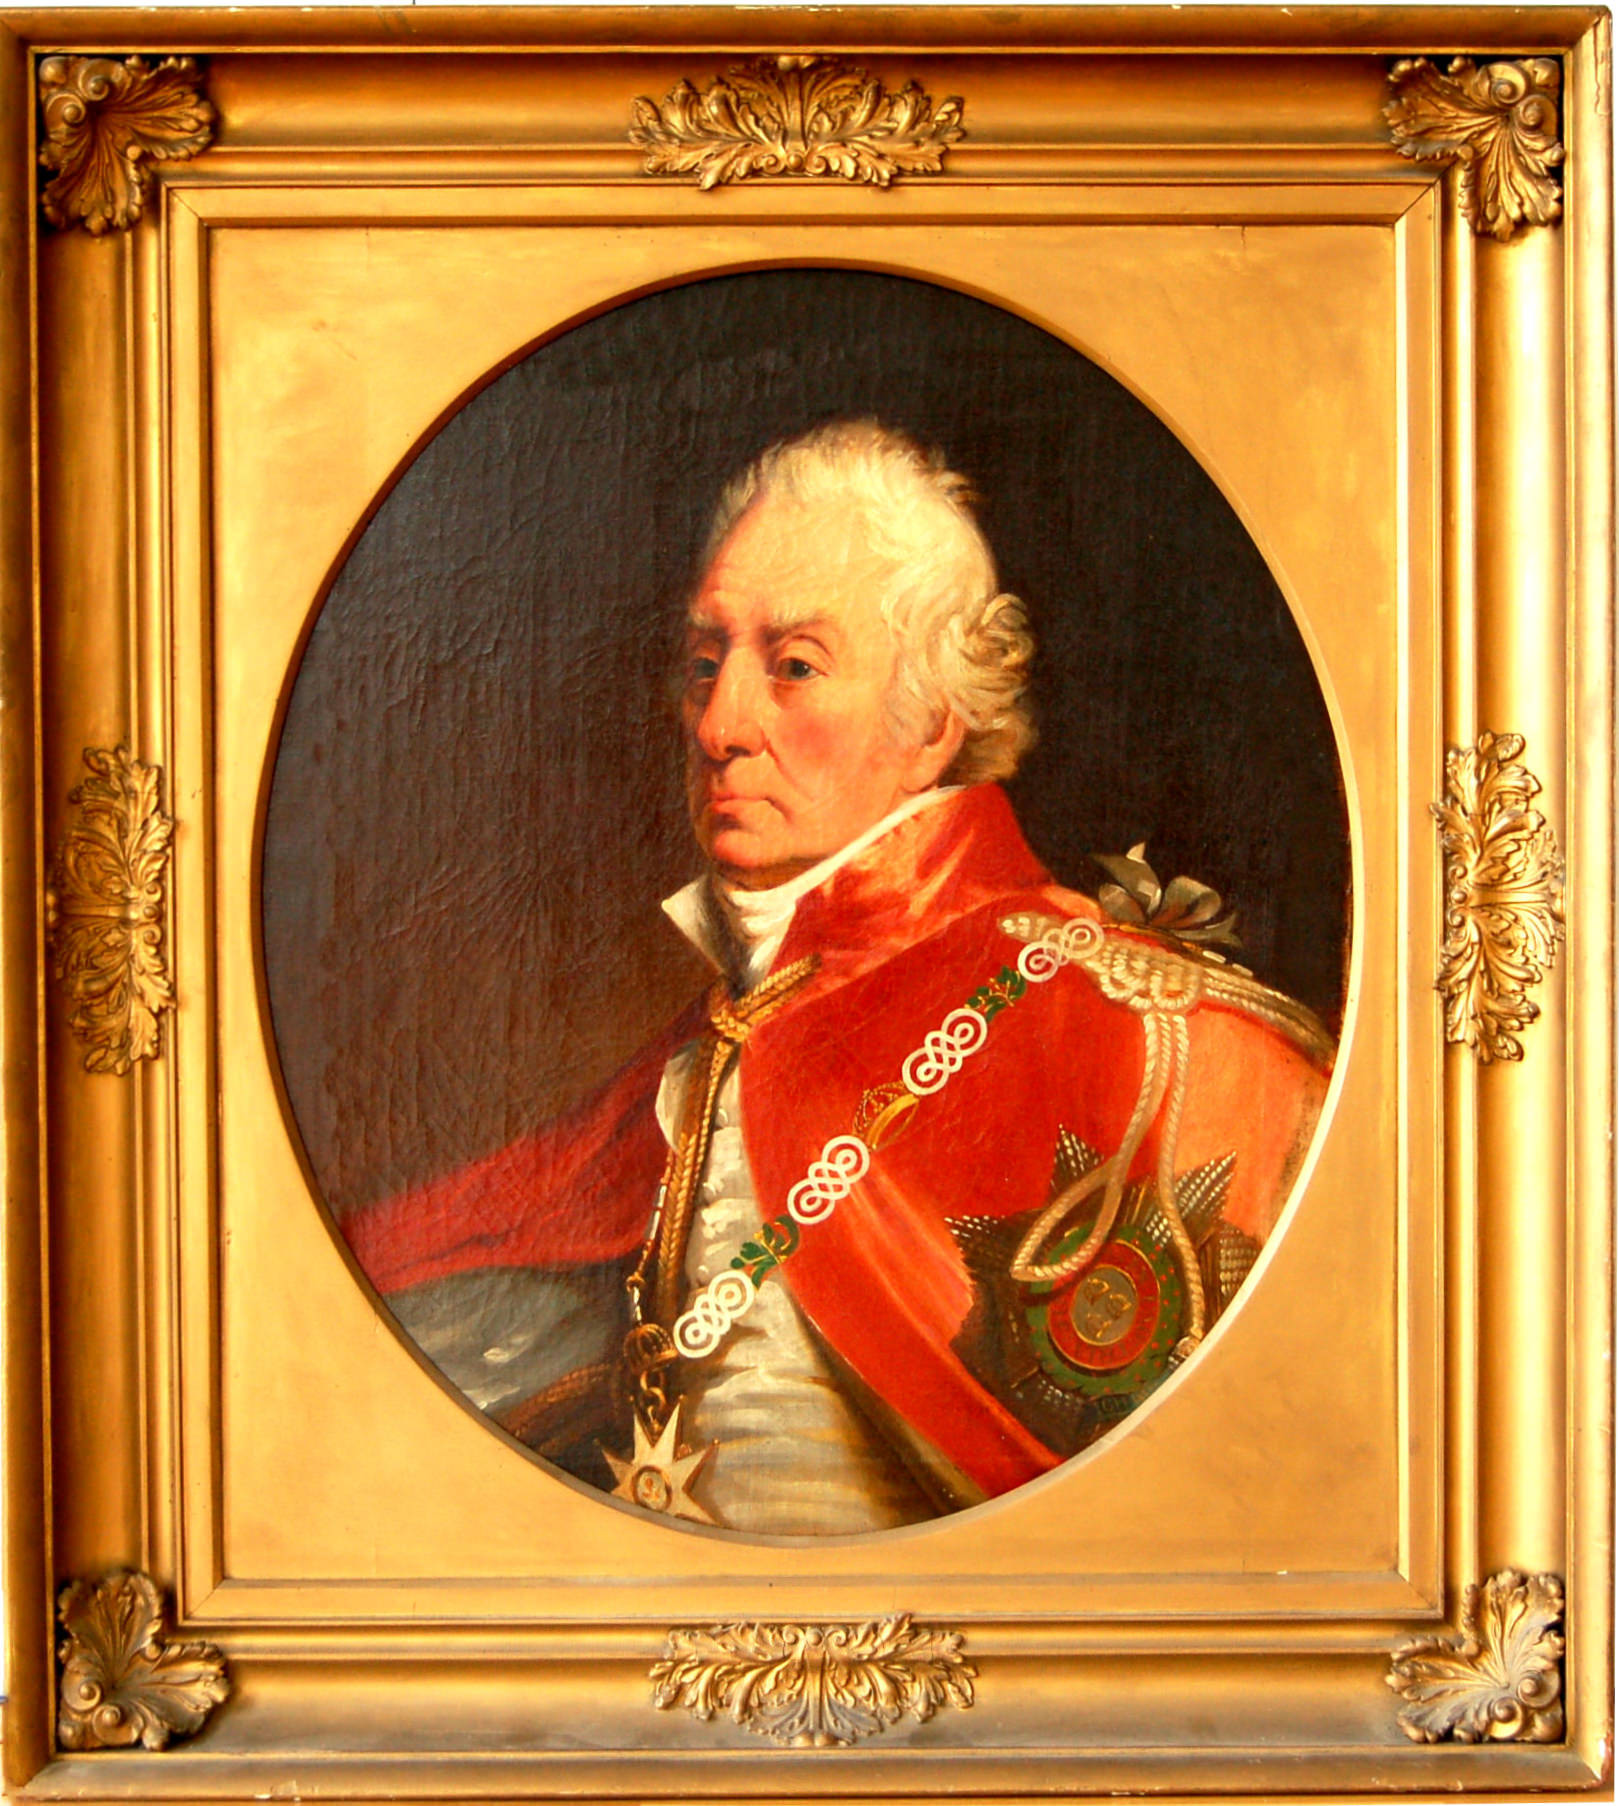 Admiral George Keith Elphinstone by George Sanders